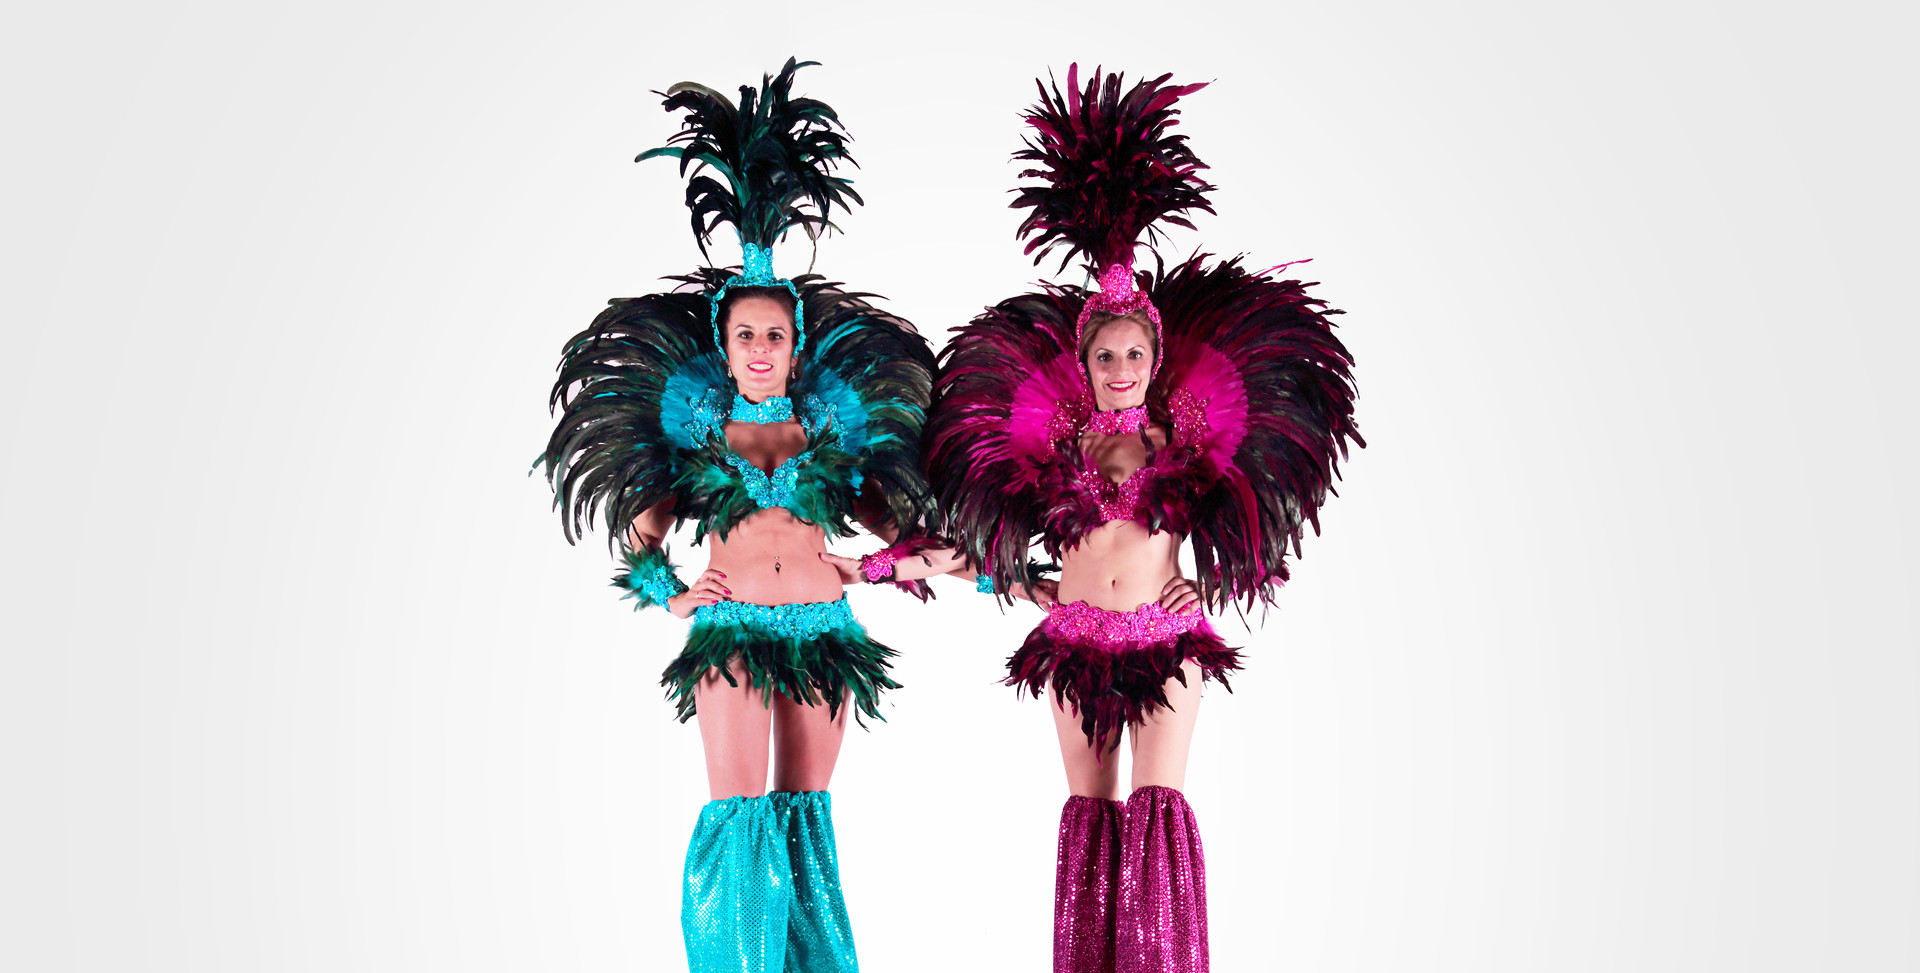 CARNIVAL PEG STILTWALKERS